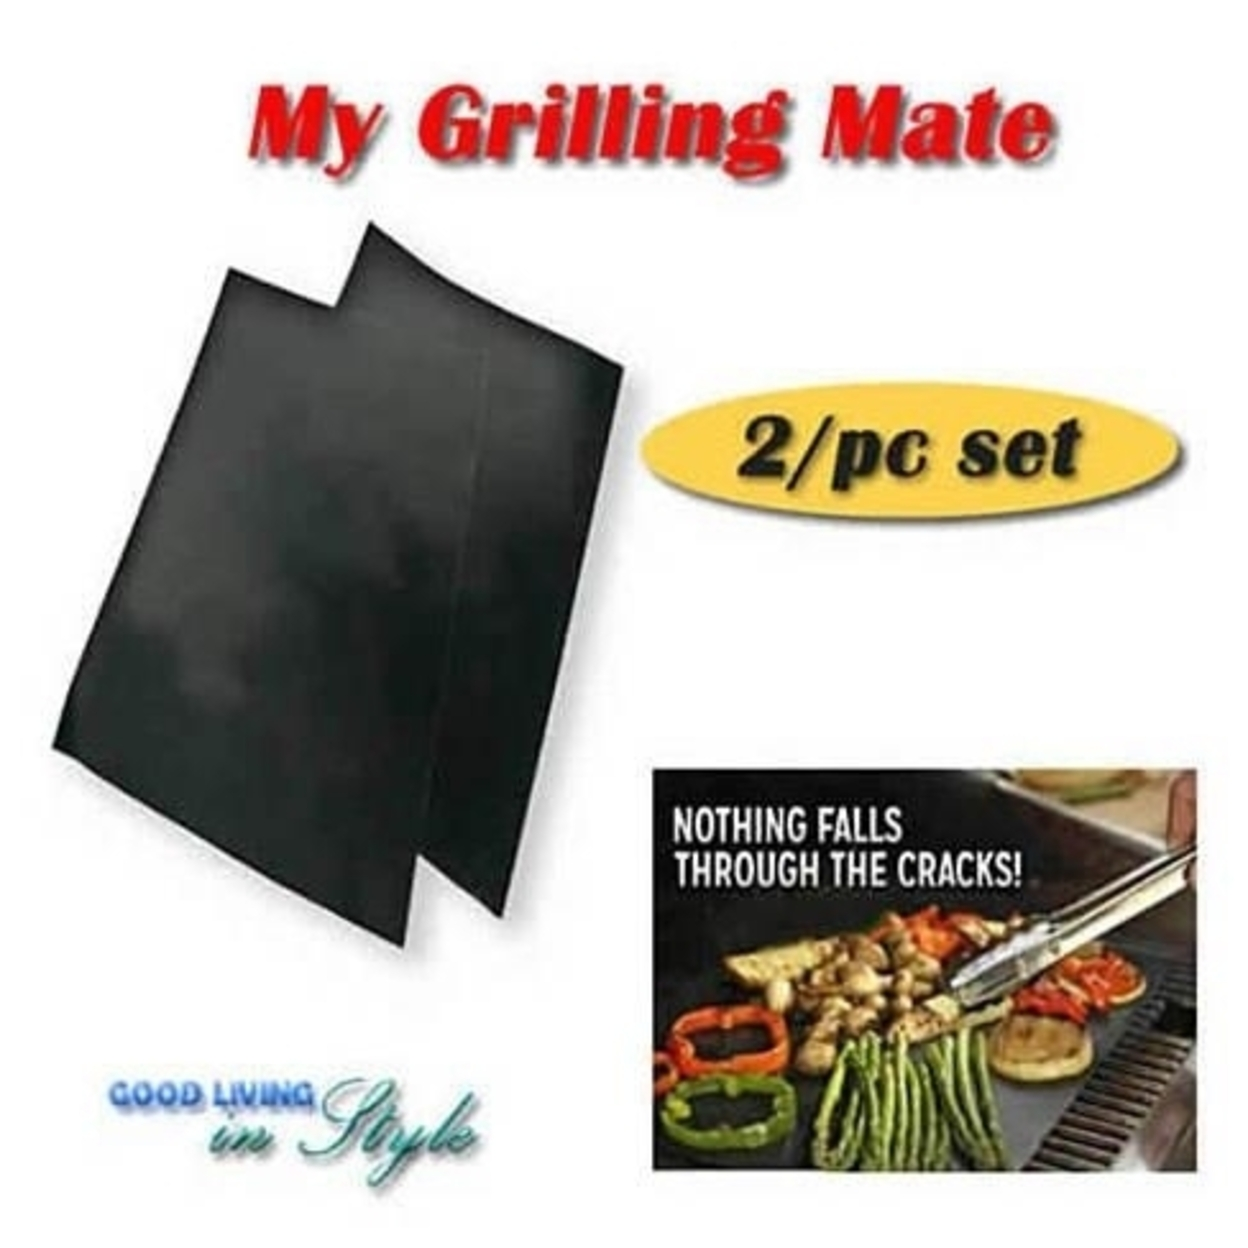 MY Grilling Mate .. A Must Have Accessory FOR Your Grill This Summer.. 538c24711a0ba0dc4800003b